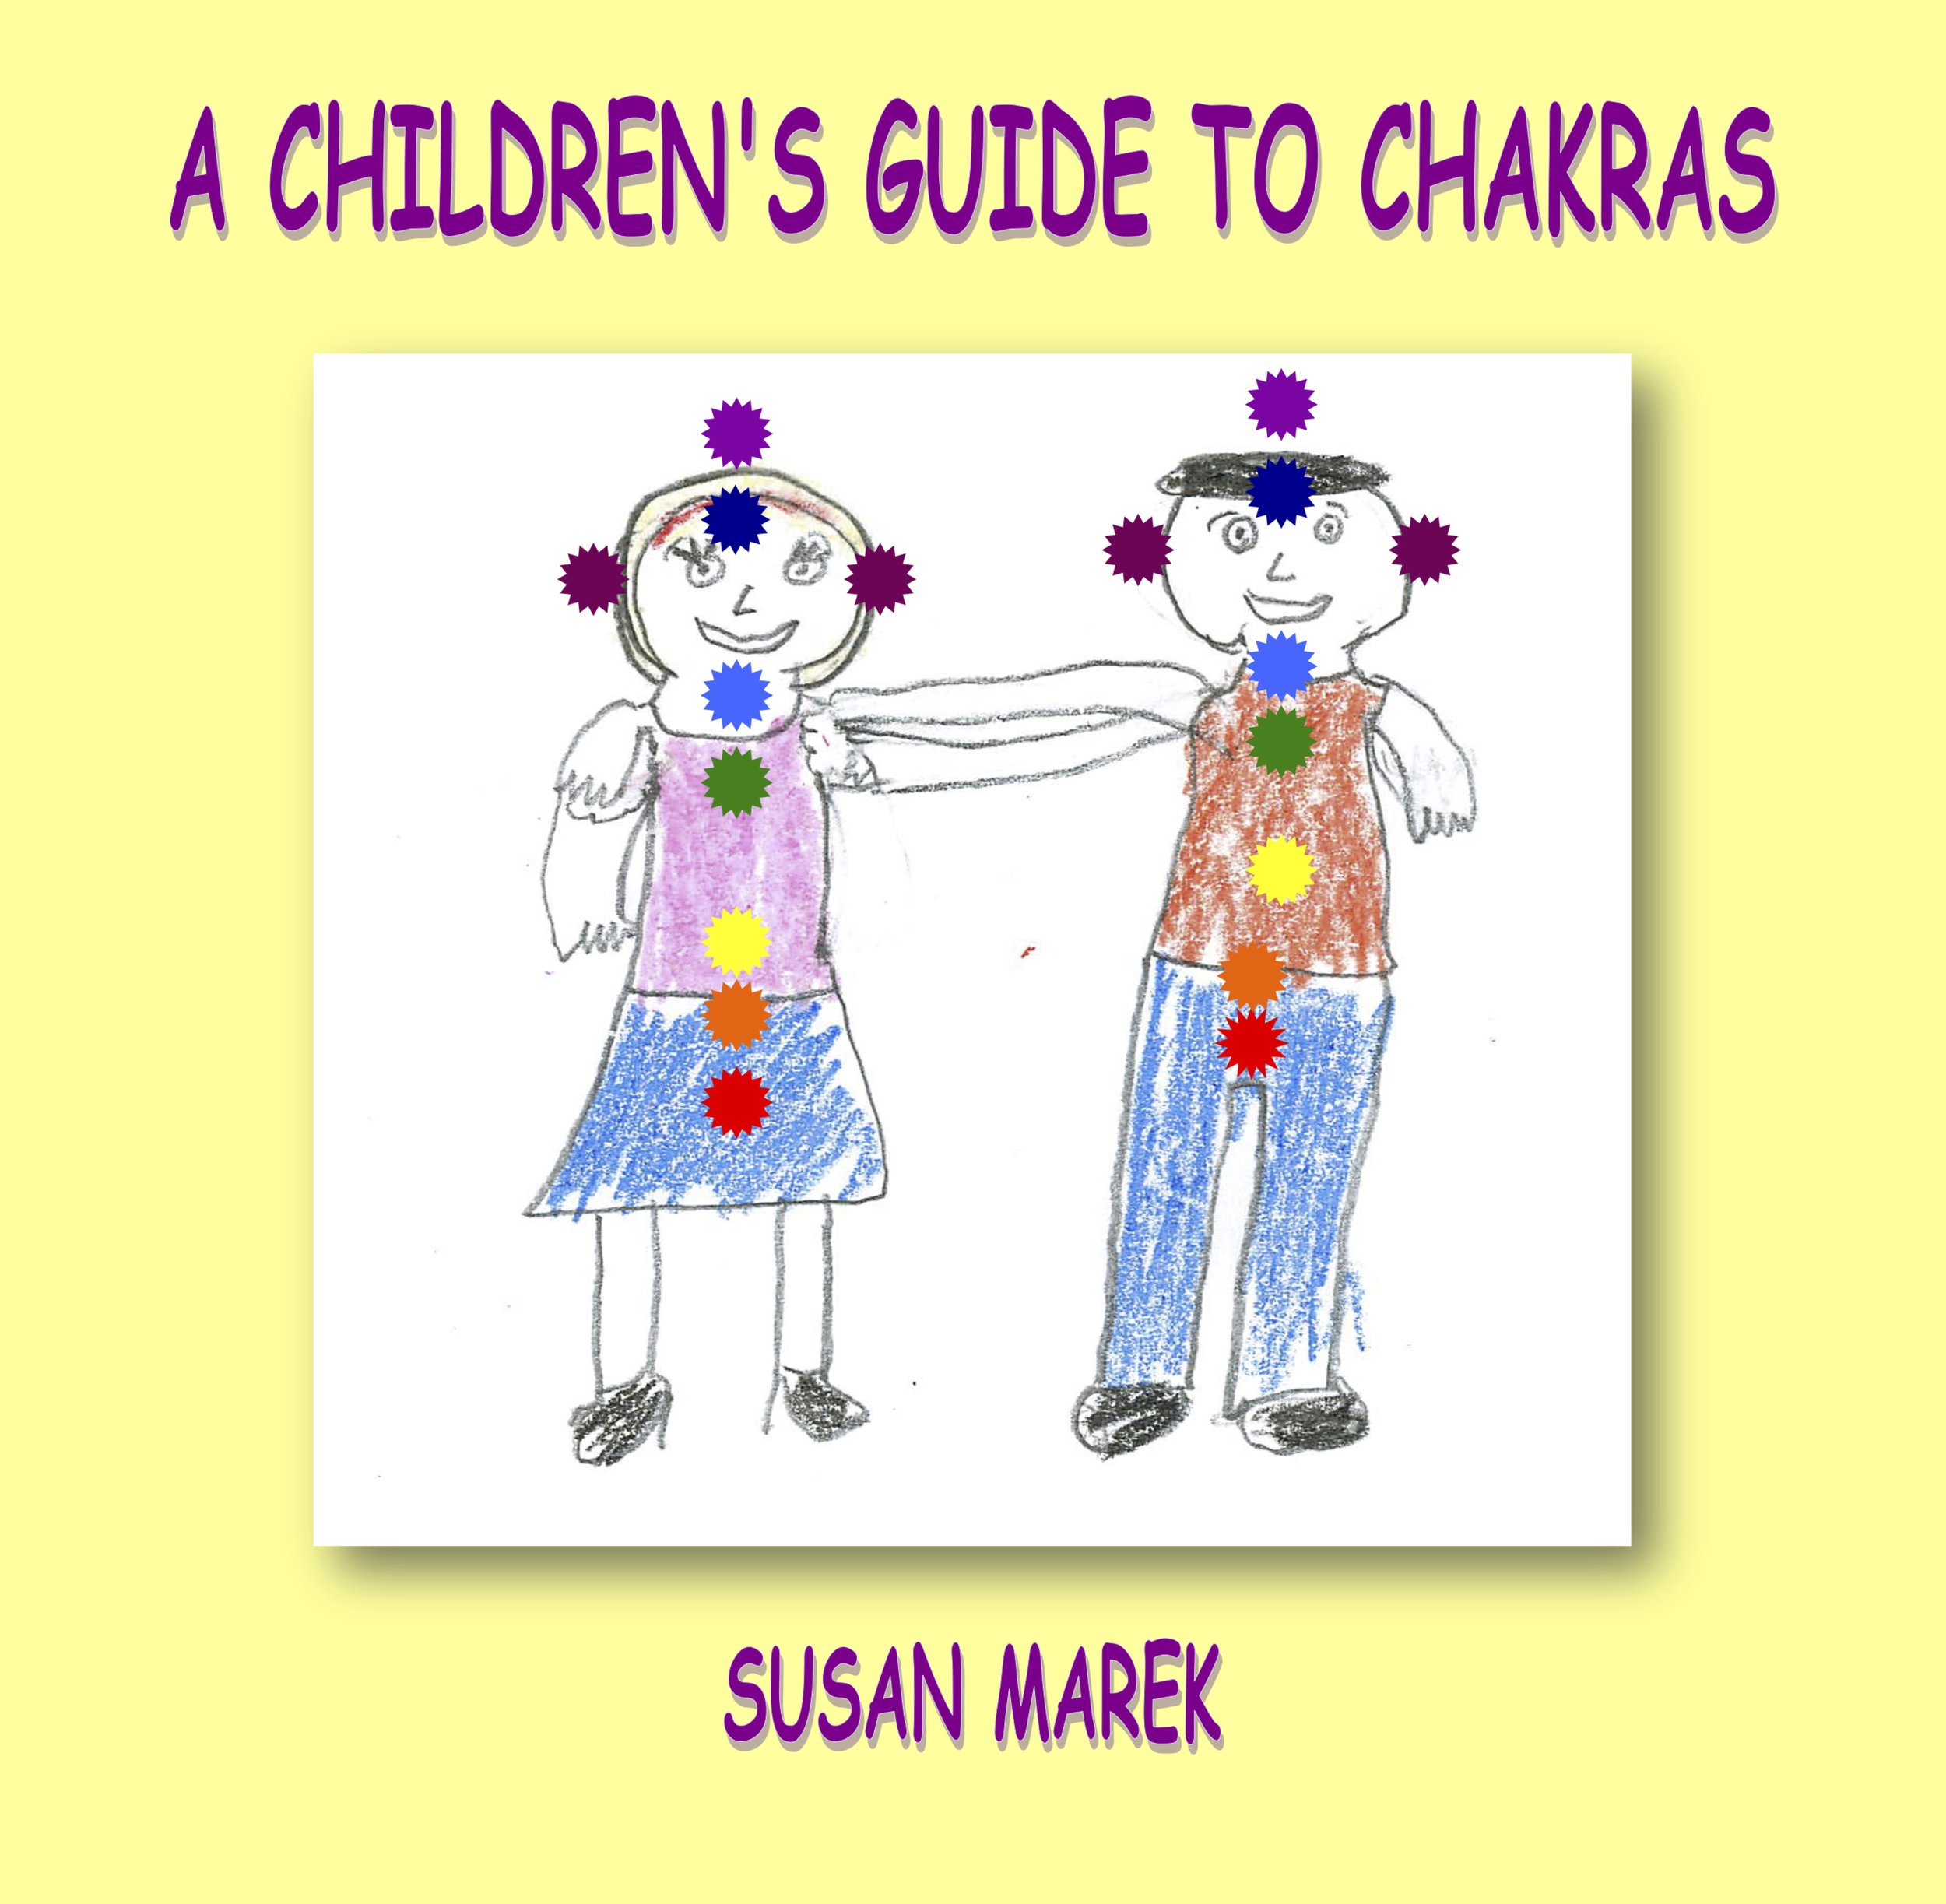 A Children's Guide to Chakras - From the time they are very small, parents teach their children about their physical bodies and how to care for them. A Children's Guide of Chakras takes this a step further in providing parents with a child-friendly, basic guide to the energy body and chakras. Exercises on chakra clearing and balancing are also included. A great basic resource for children of all ages!  Available through Amazon.com, BarnesandNoble.com, and Powells.com. Also available for order from your favorite local bookseller. Also available on iBooks and Nook.